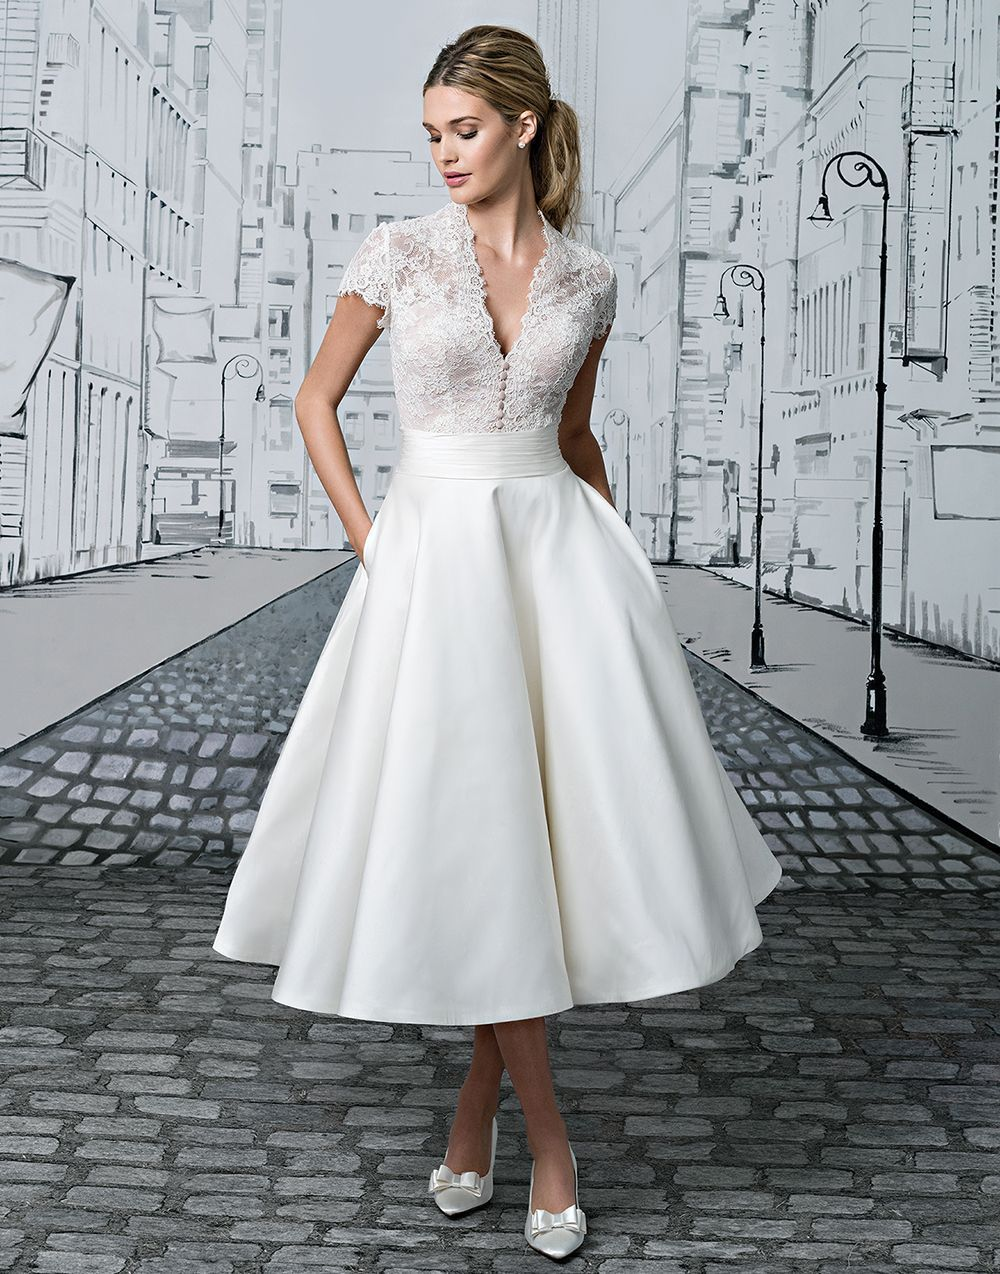 Kerala wedding reception dresses for the bride  Justin Alexander wedding dresses style  The options are endless